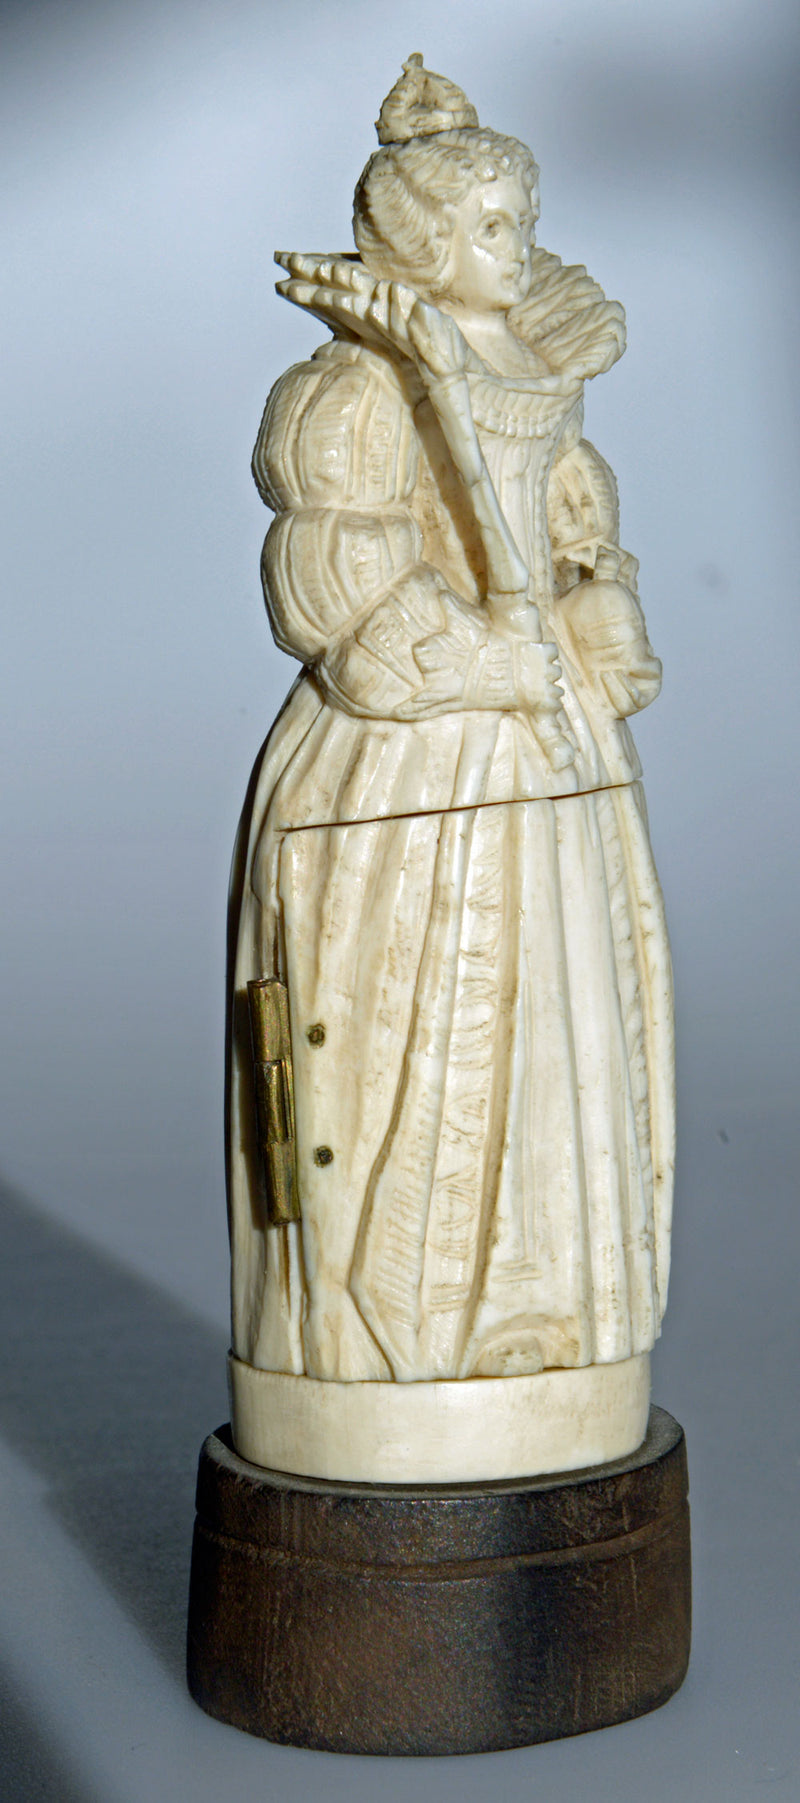 Antique Dieppe ivory triptych carving of Queen Elizabeth